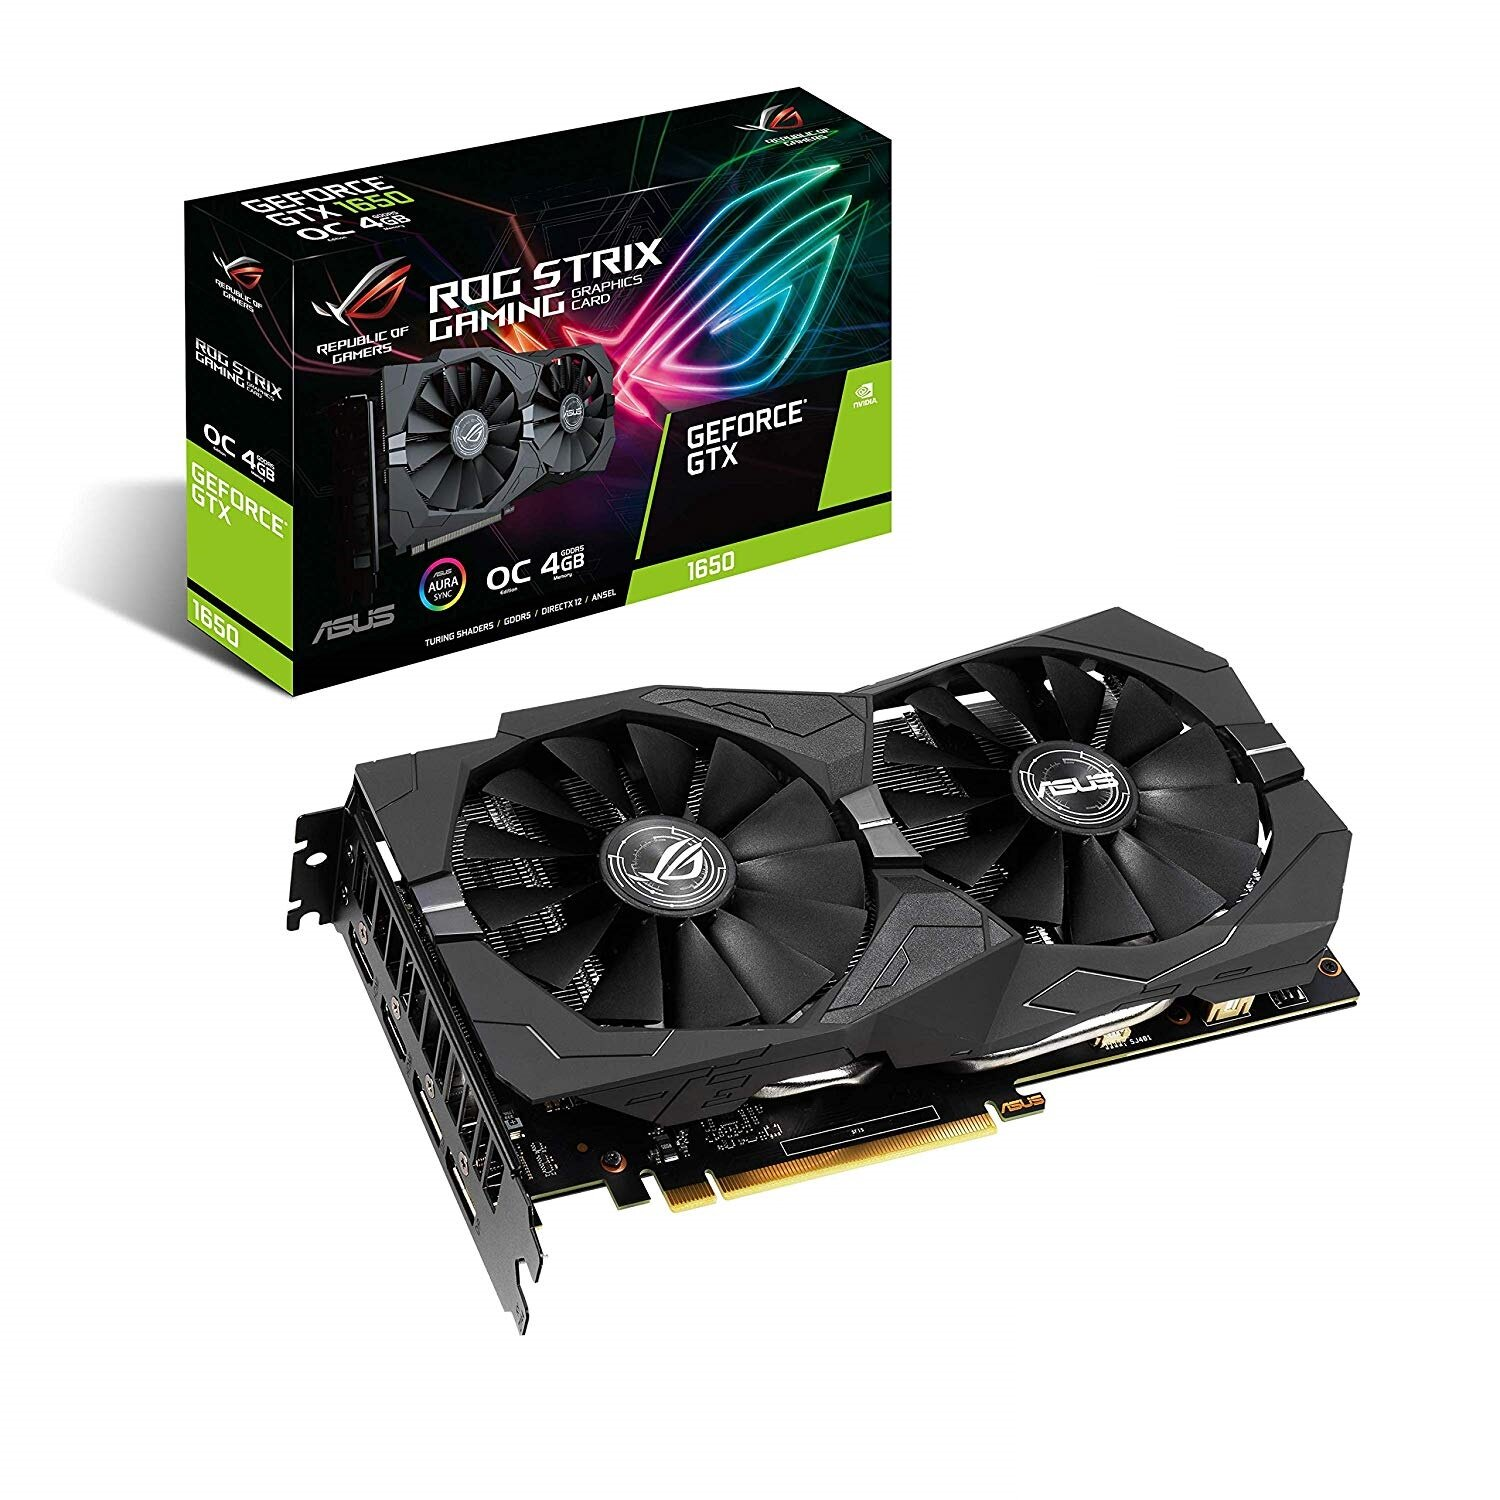 Видеокарта GF GTX 1650 4GB GDDR5 ROG Strix Gaming OC Asus (ROG-STRIX-GTX1650-O4G-GAMING)